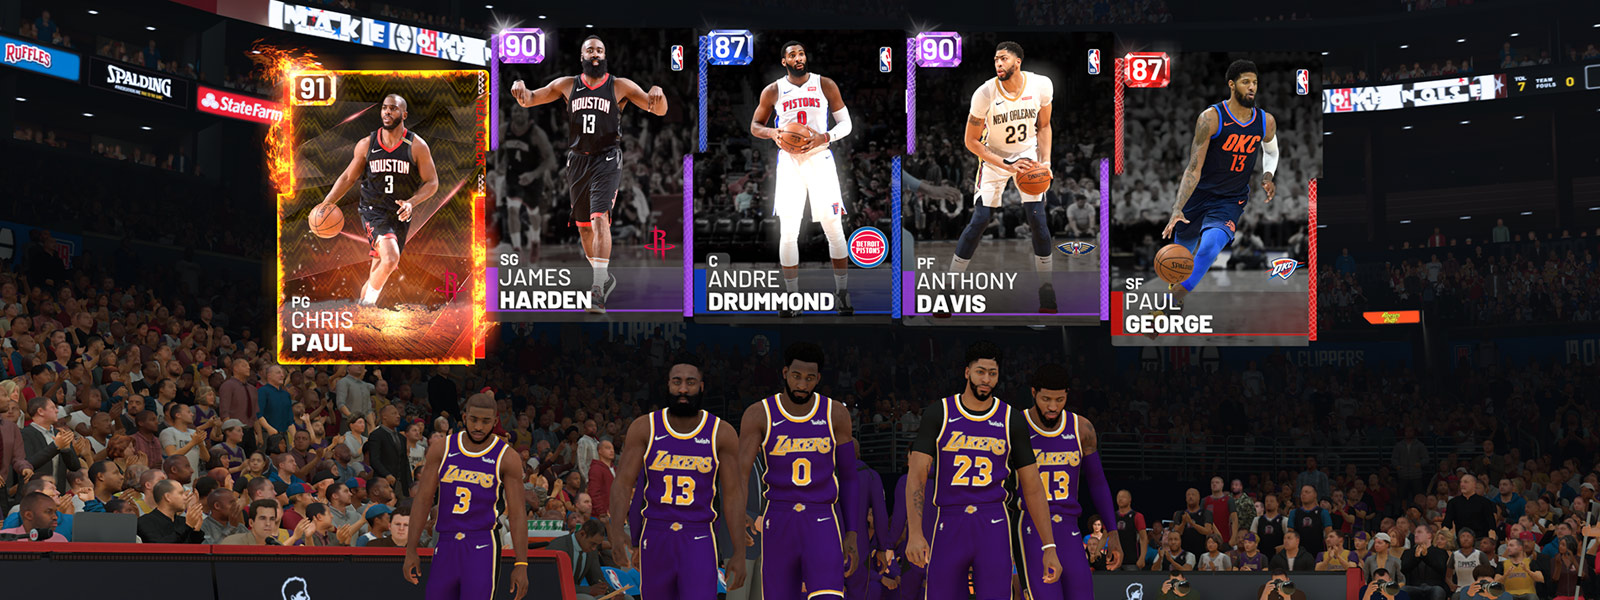 Vista frontal del equipo de básquet Lakers con Chris Paul, James Harden, Andrew Drummond, Anthony Davis y Paul George